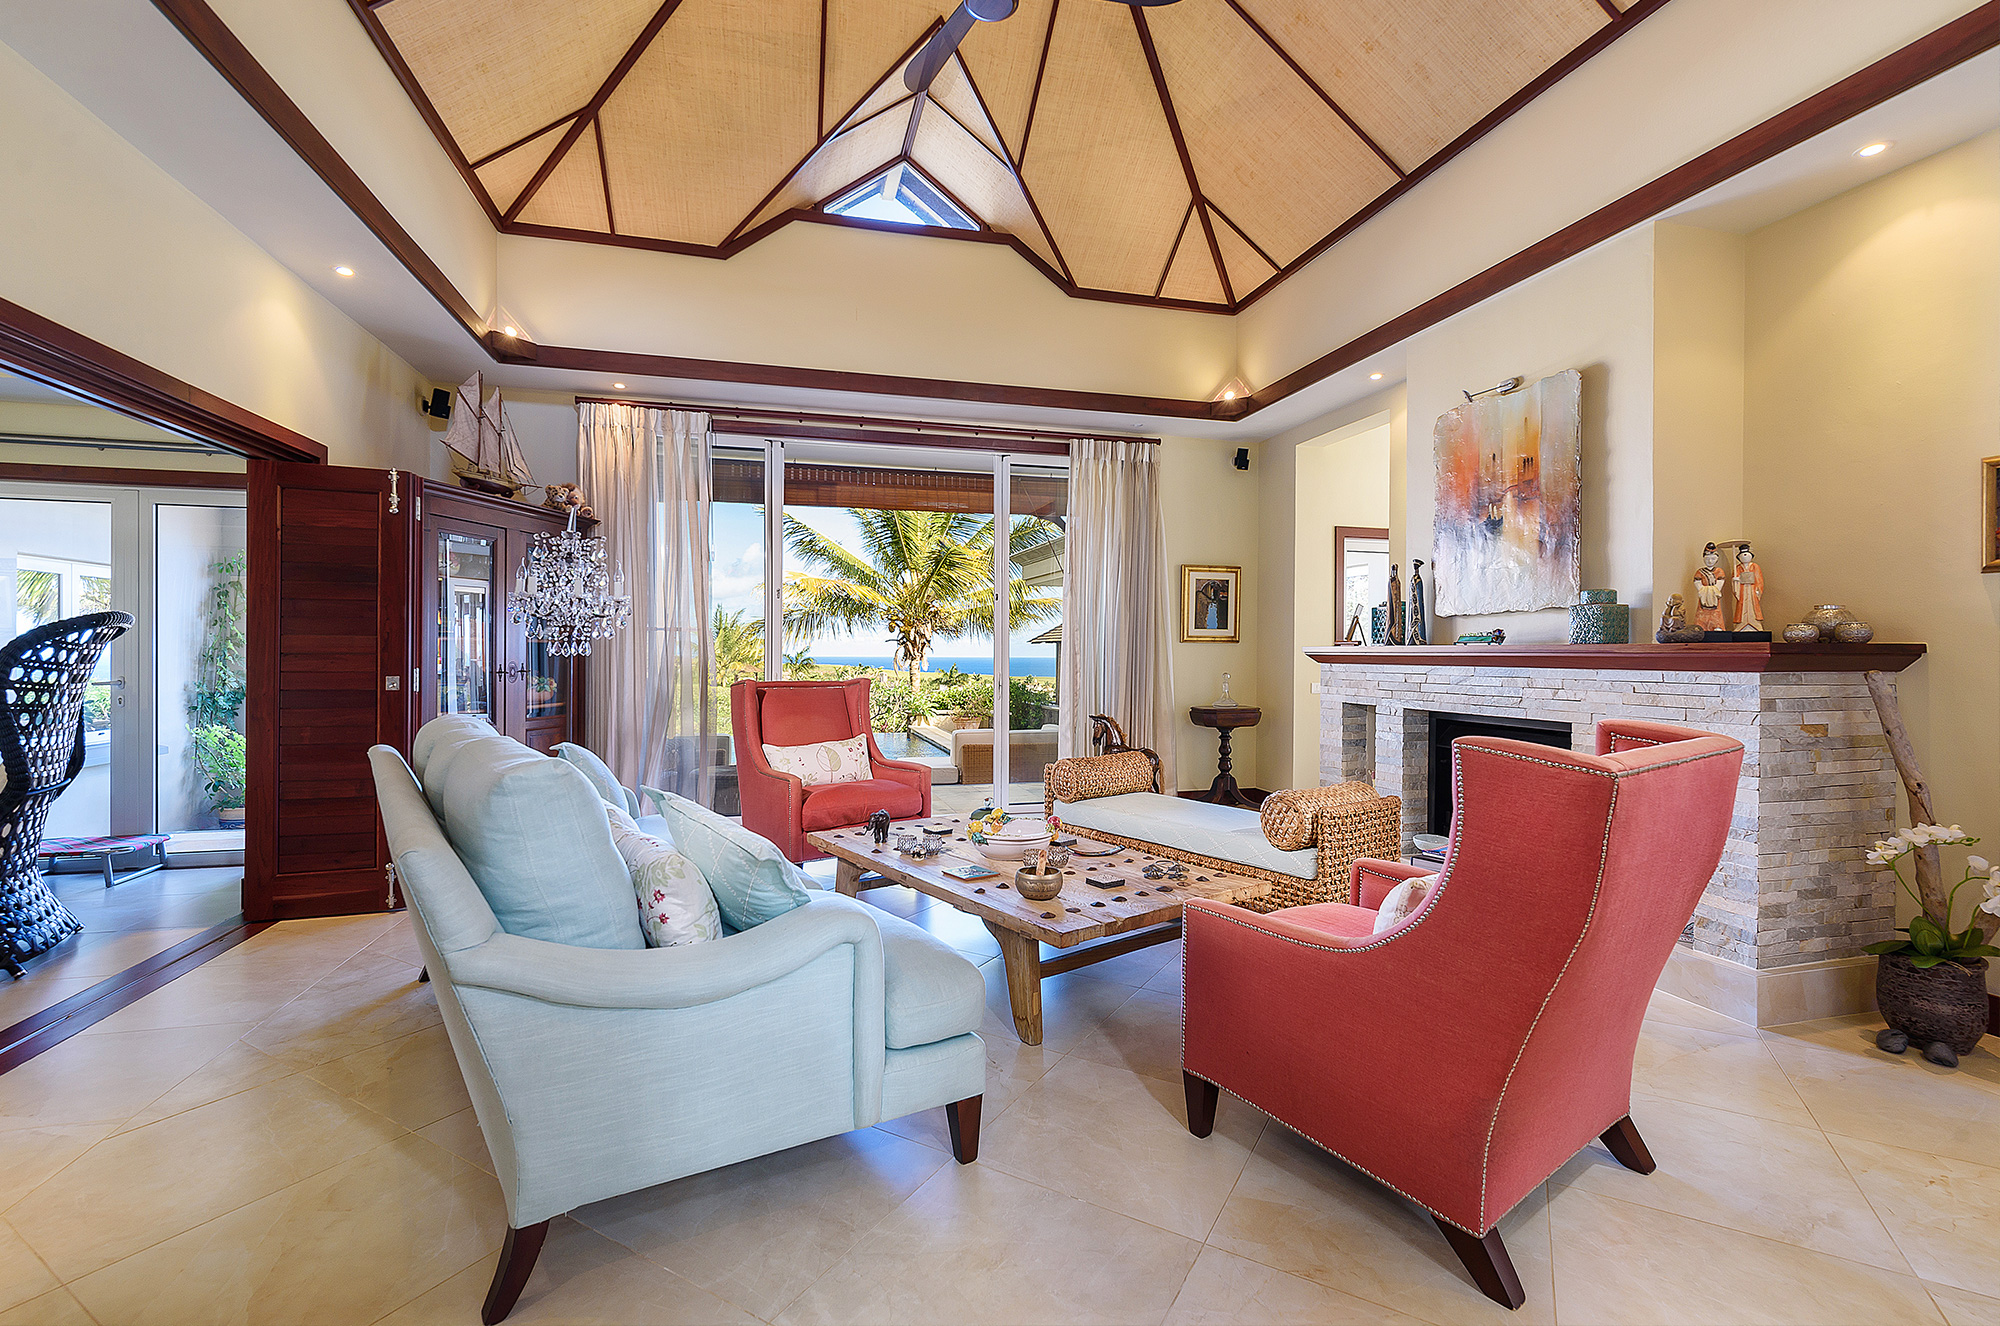 new and notable properties for sale mauritius sothebys international realty